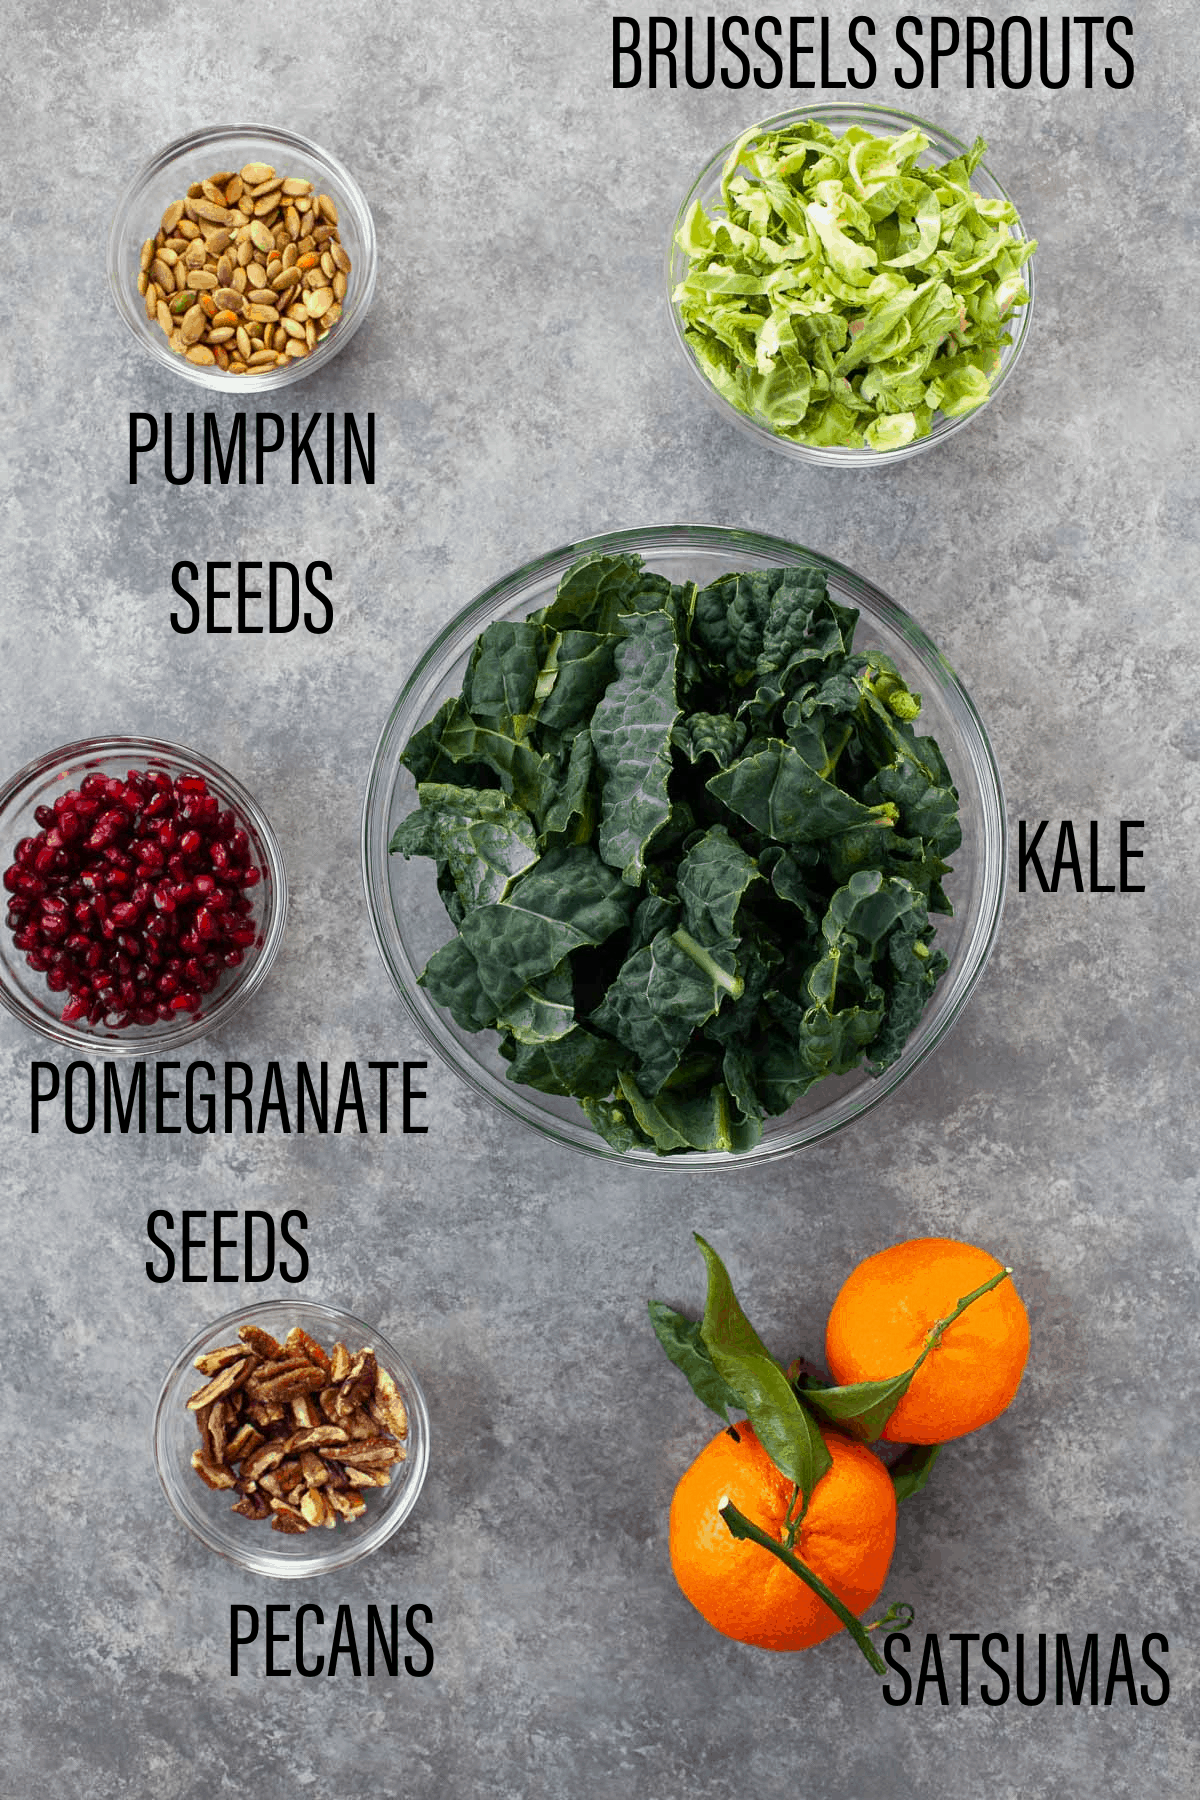 two satsumas, then separate bowls of pumpkin seeds, pecans, pomegranate seeds, brussels sprouts, and kale